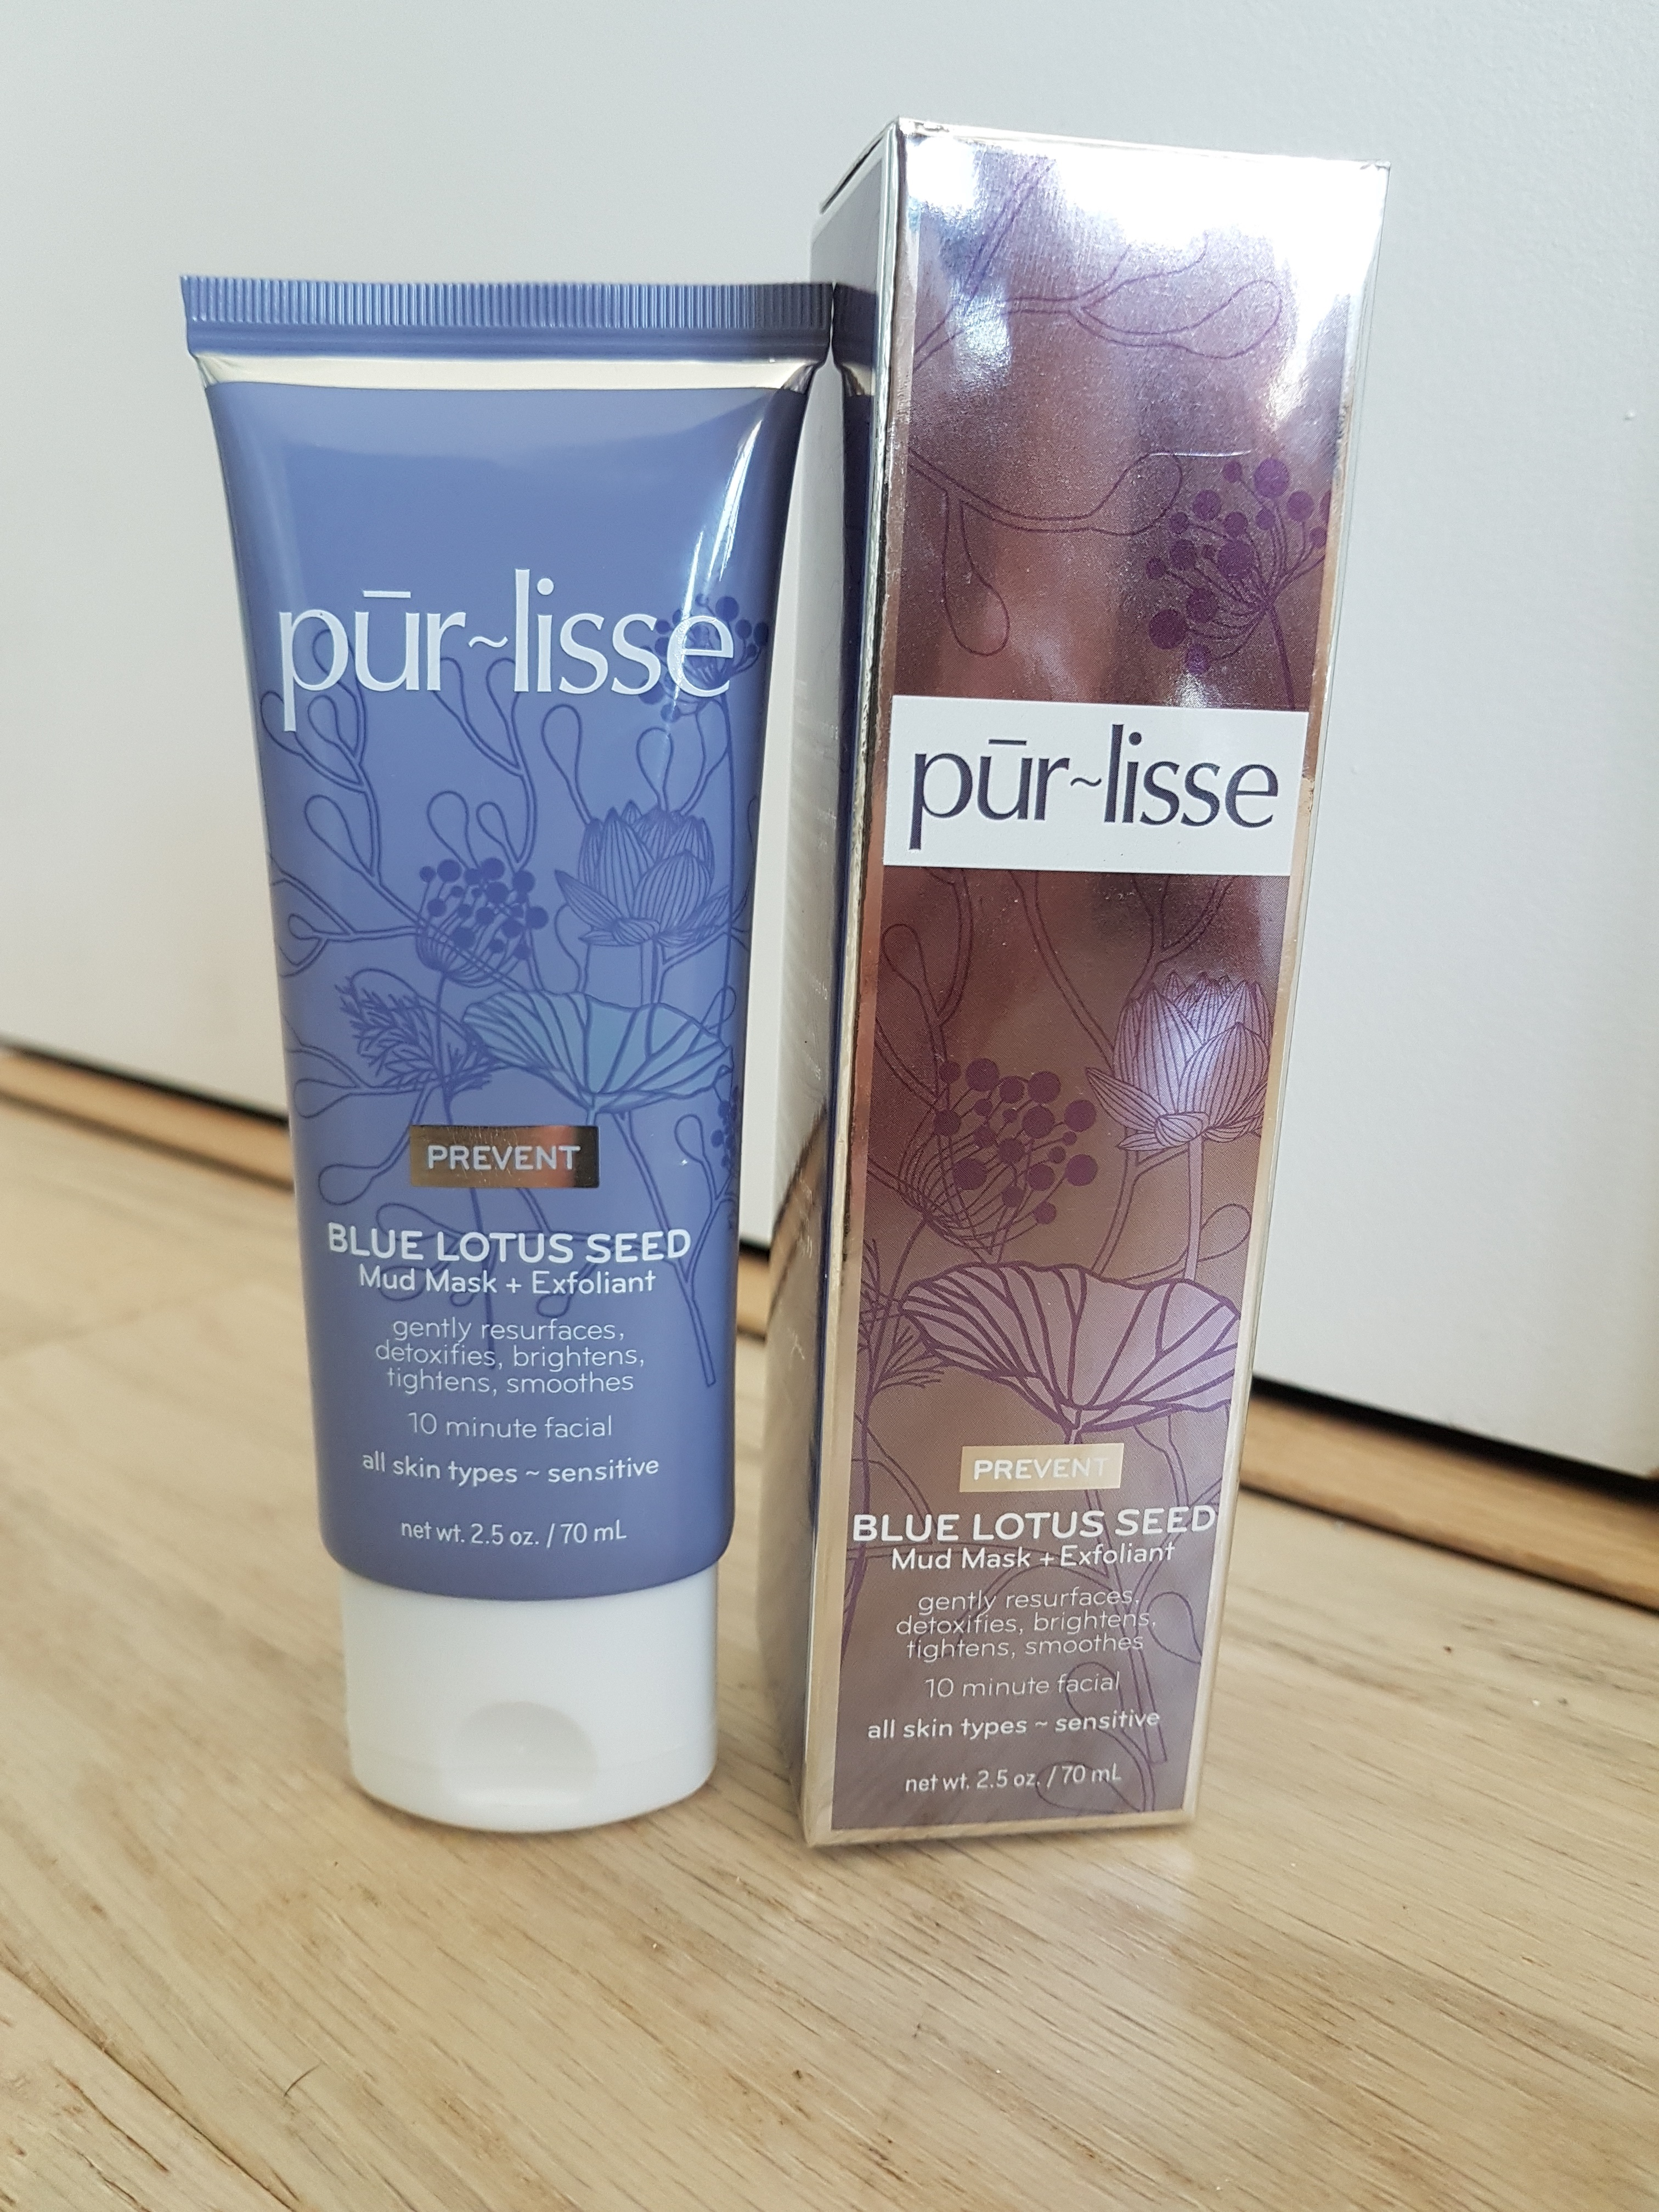 Purlisse- Blue Lotus Seed Mud Mask + Exfoliant Review